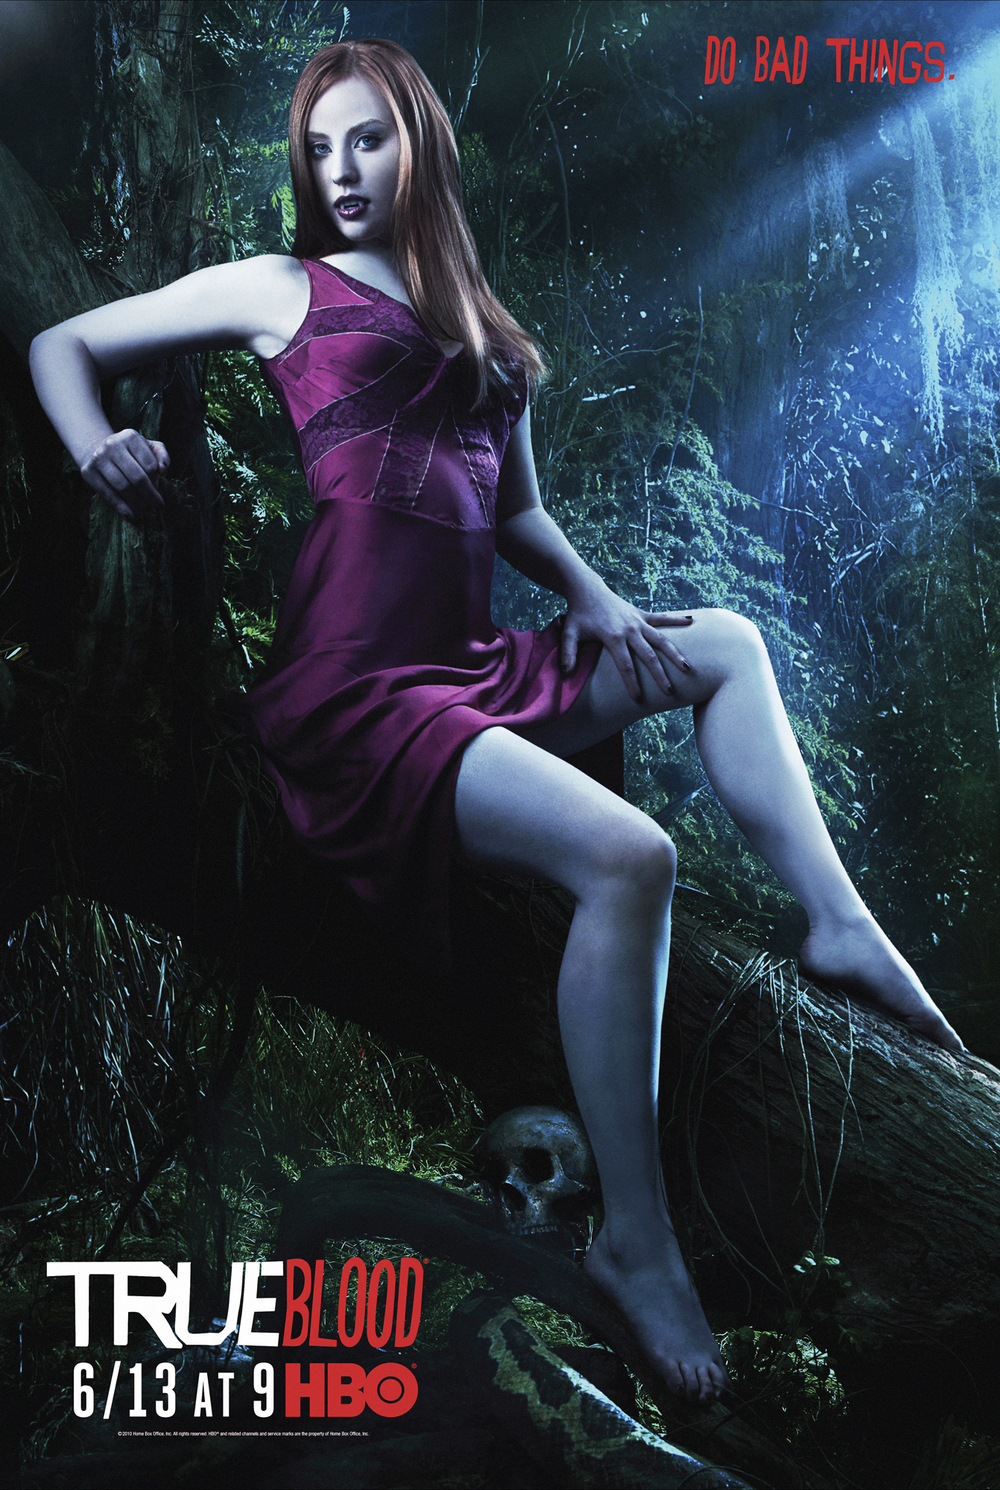 Deborah Ann Woll for HBO's True Blood - Los Angeles, CA